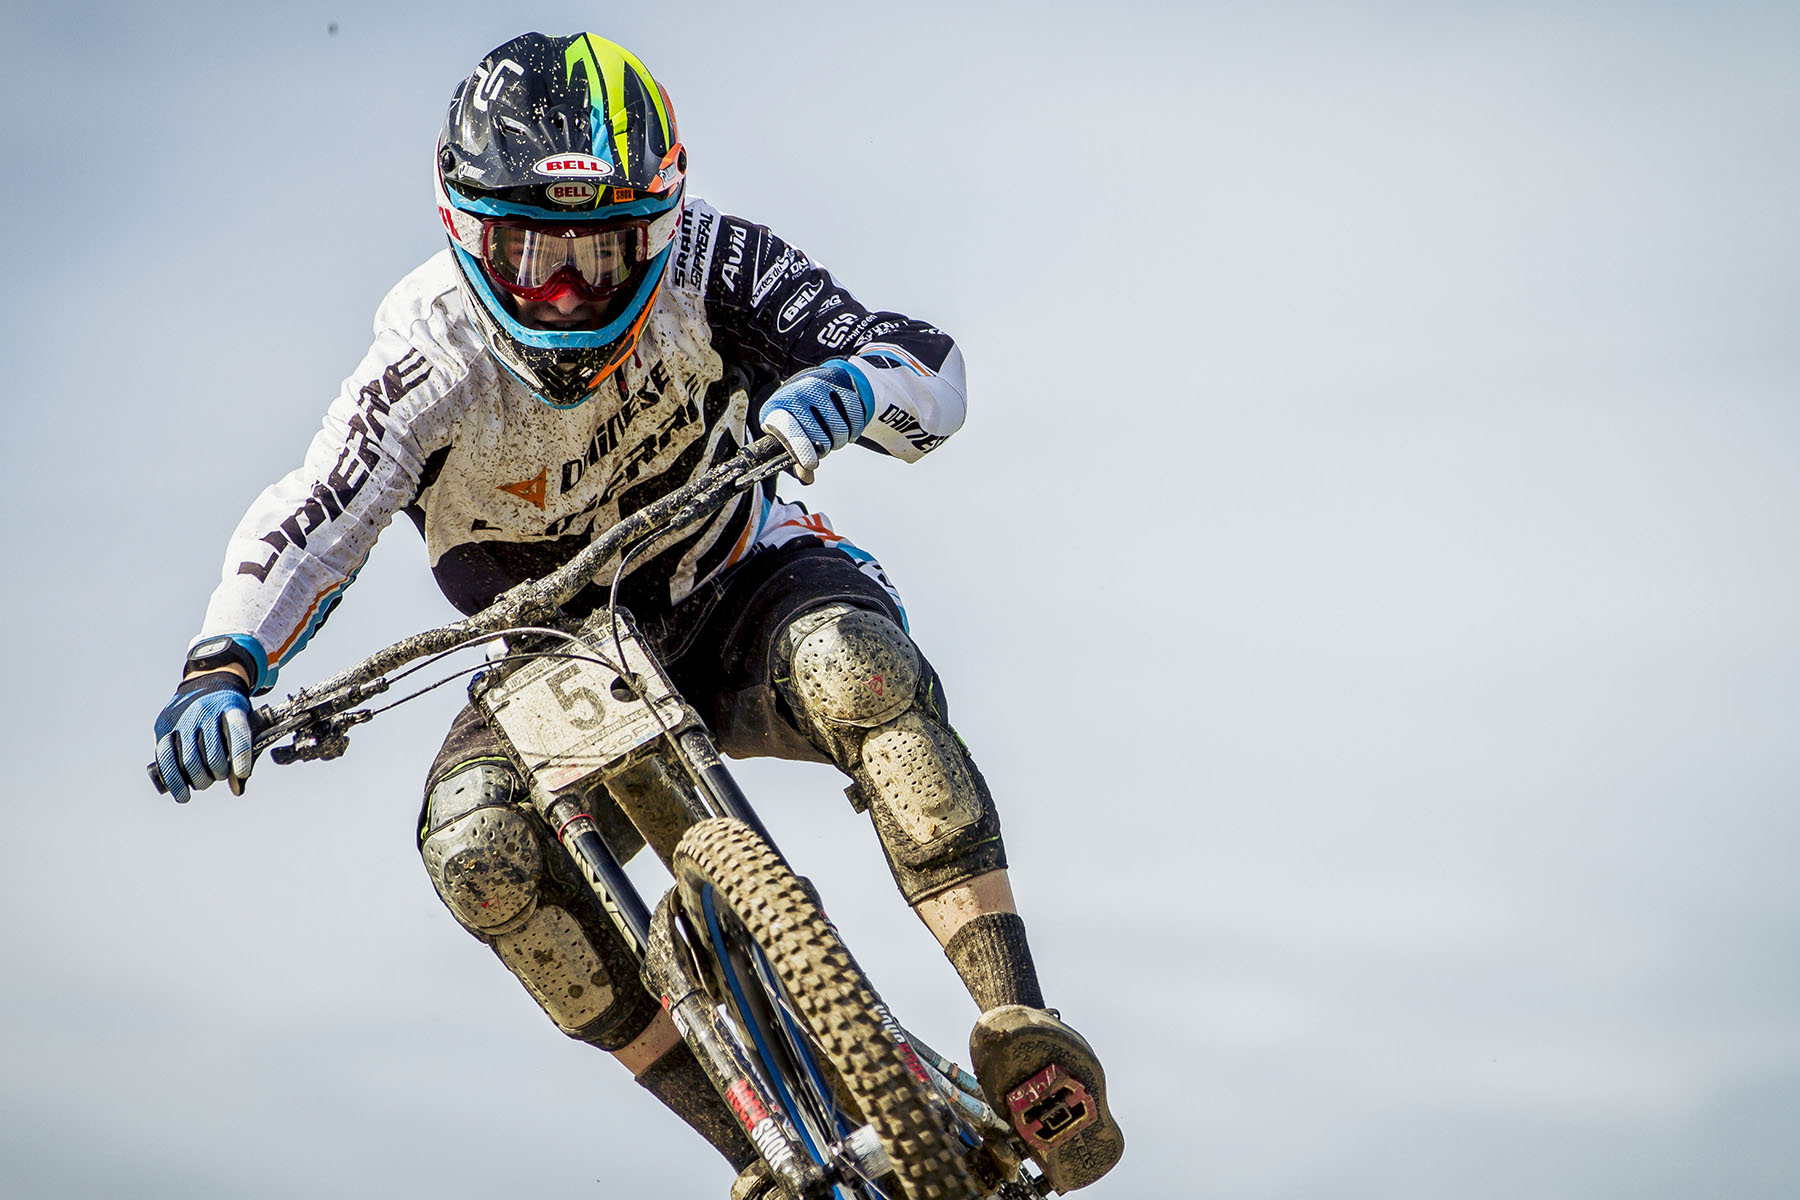 World Cup Leogang